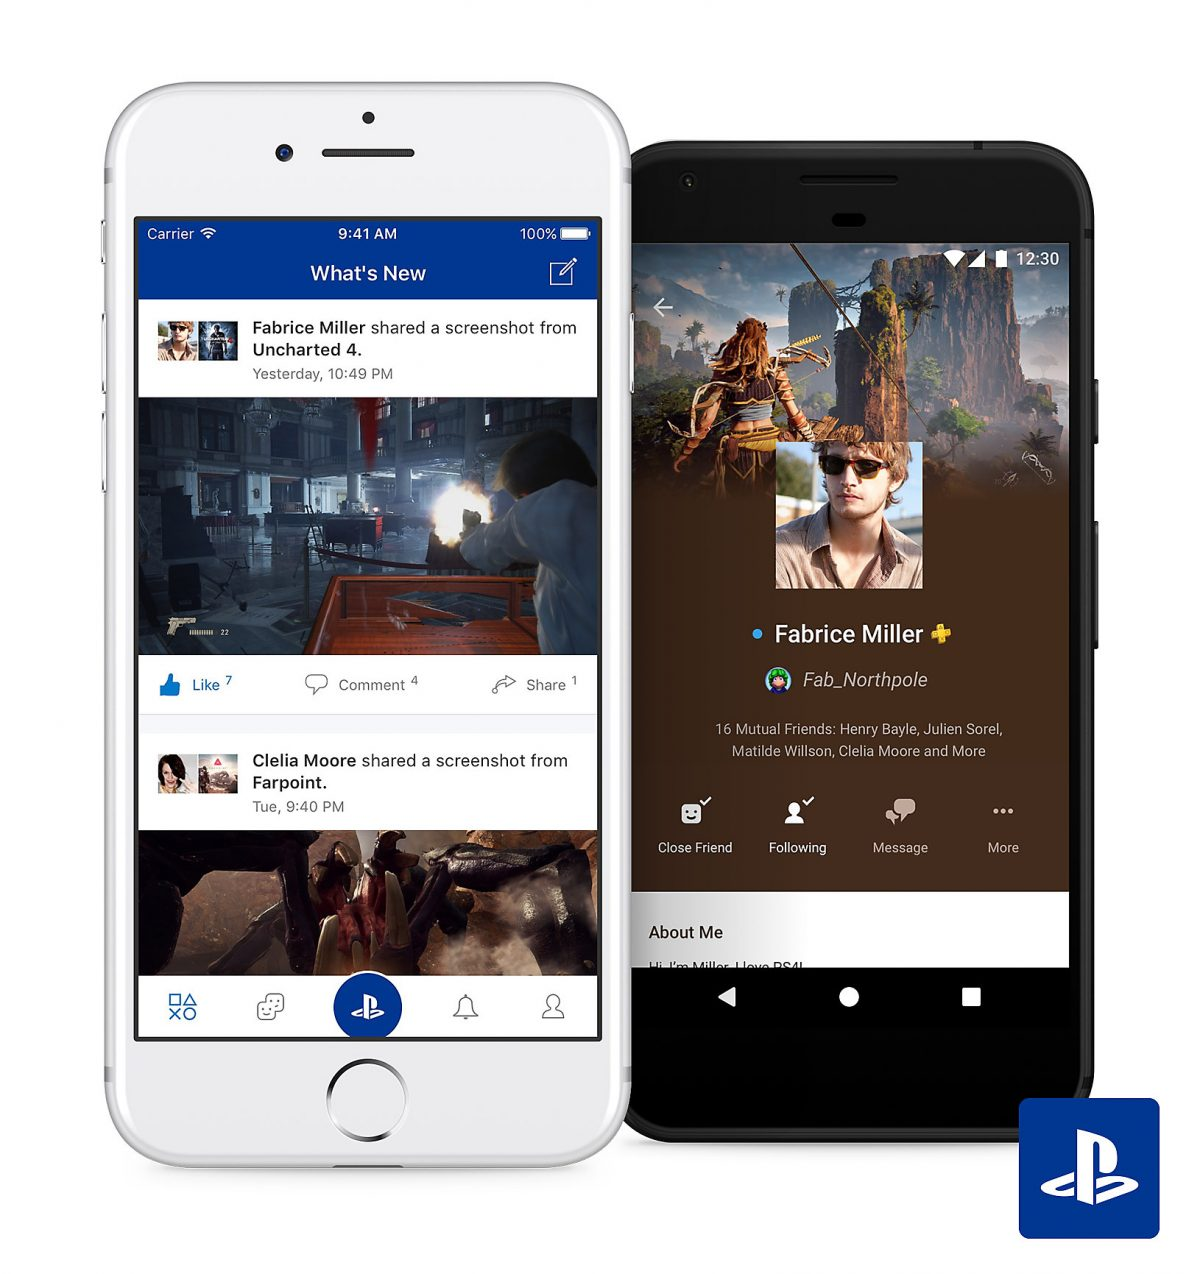 Playstation App: How to Use the App to Your Advantage